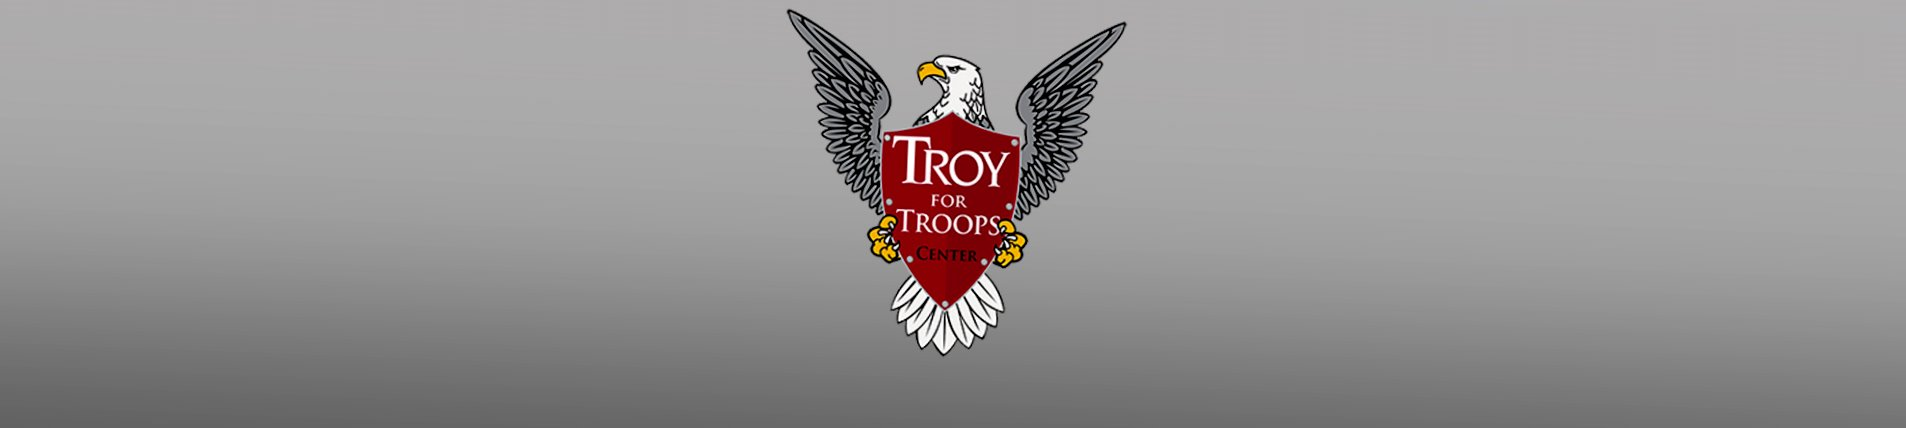 Troy University Waives Application Fees During Military Appreciation Month